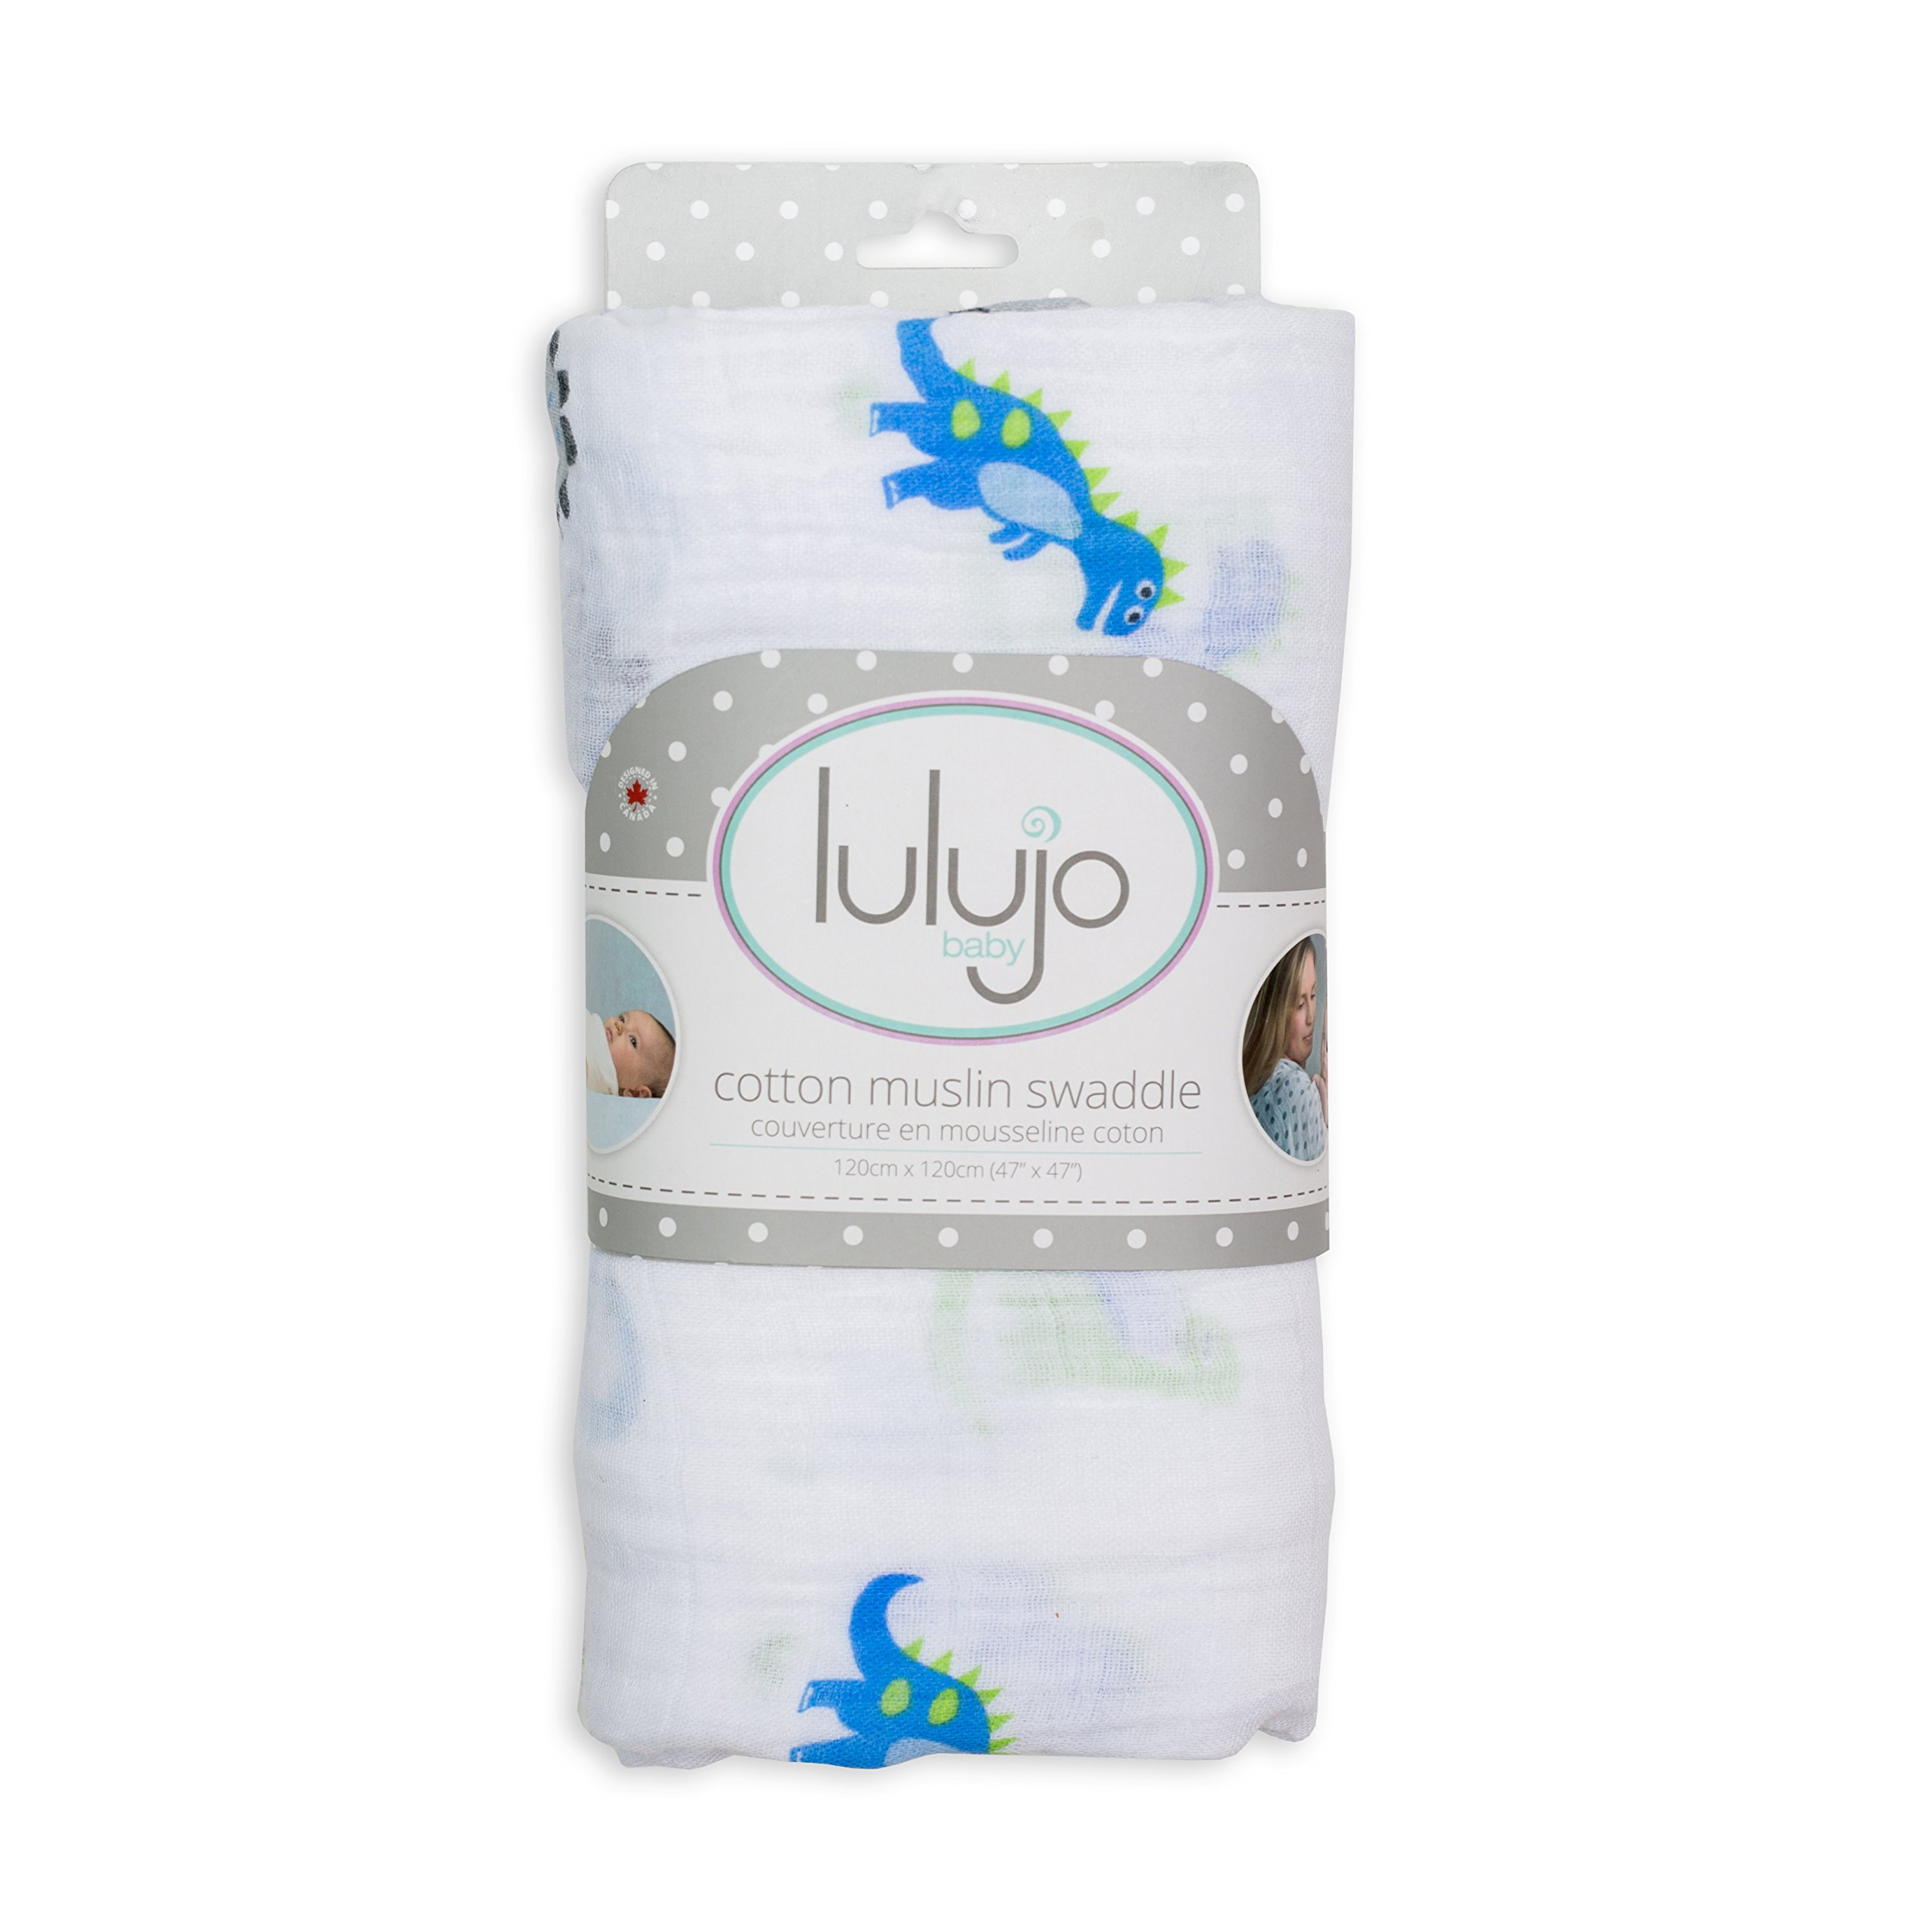 Lulujo Prehistoric Pals Swaddling Blanket, Blue/Green, One Size product image